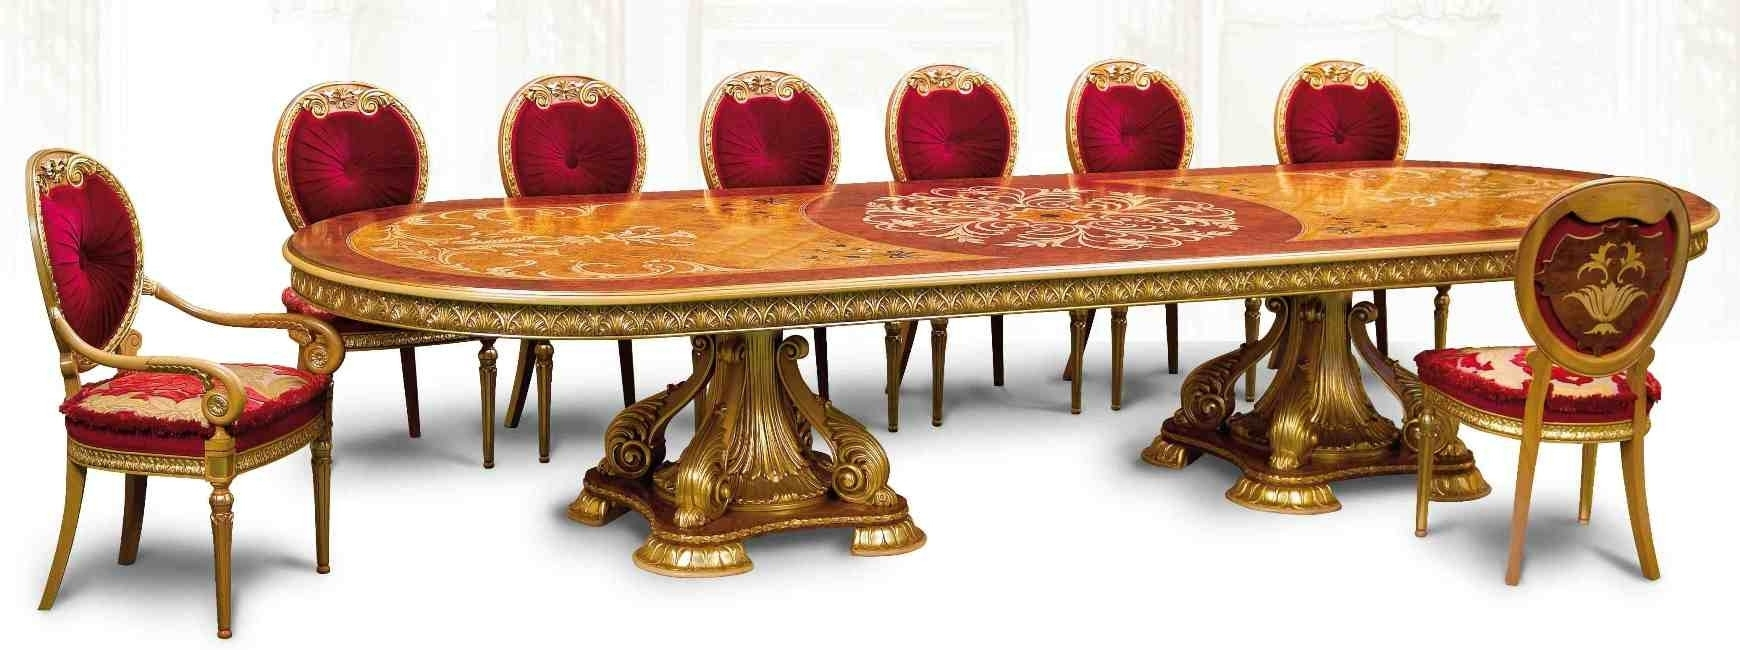 Handmade Dining Tables Luxury Furniture Empire Style Table Endearing With Regard To Best And Newest Grady Round Dining Tables (View 9 of 20)